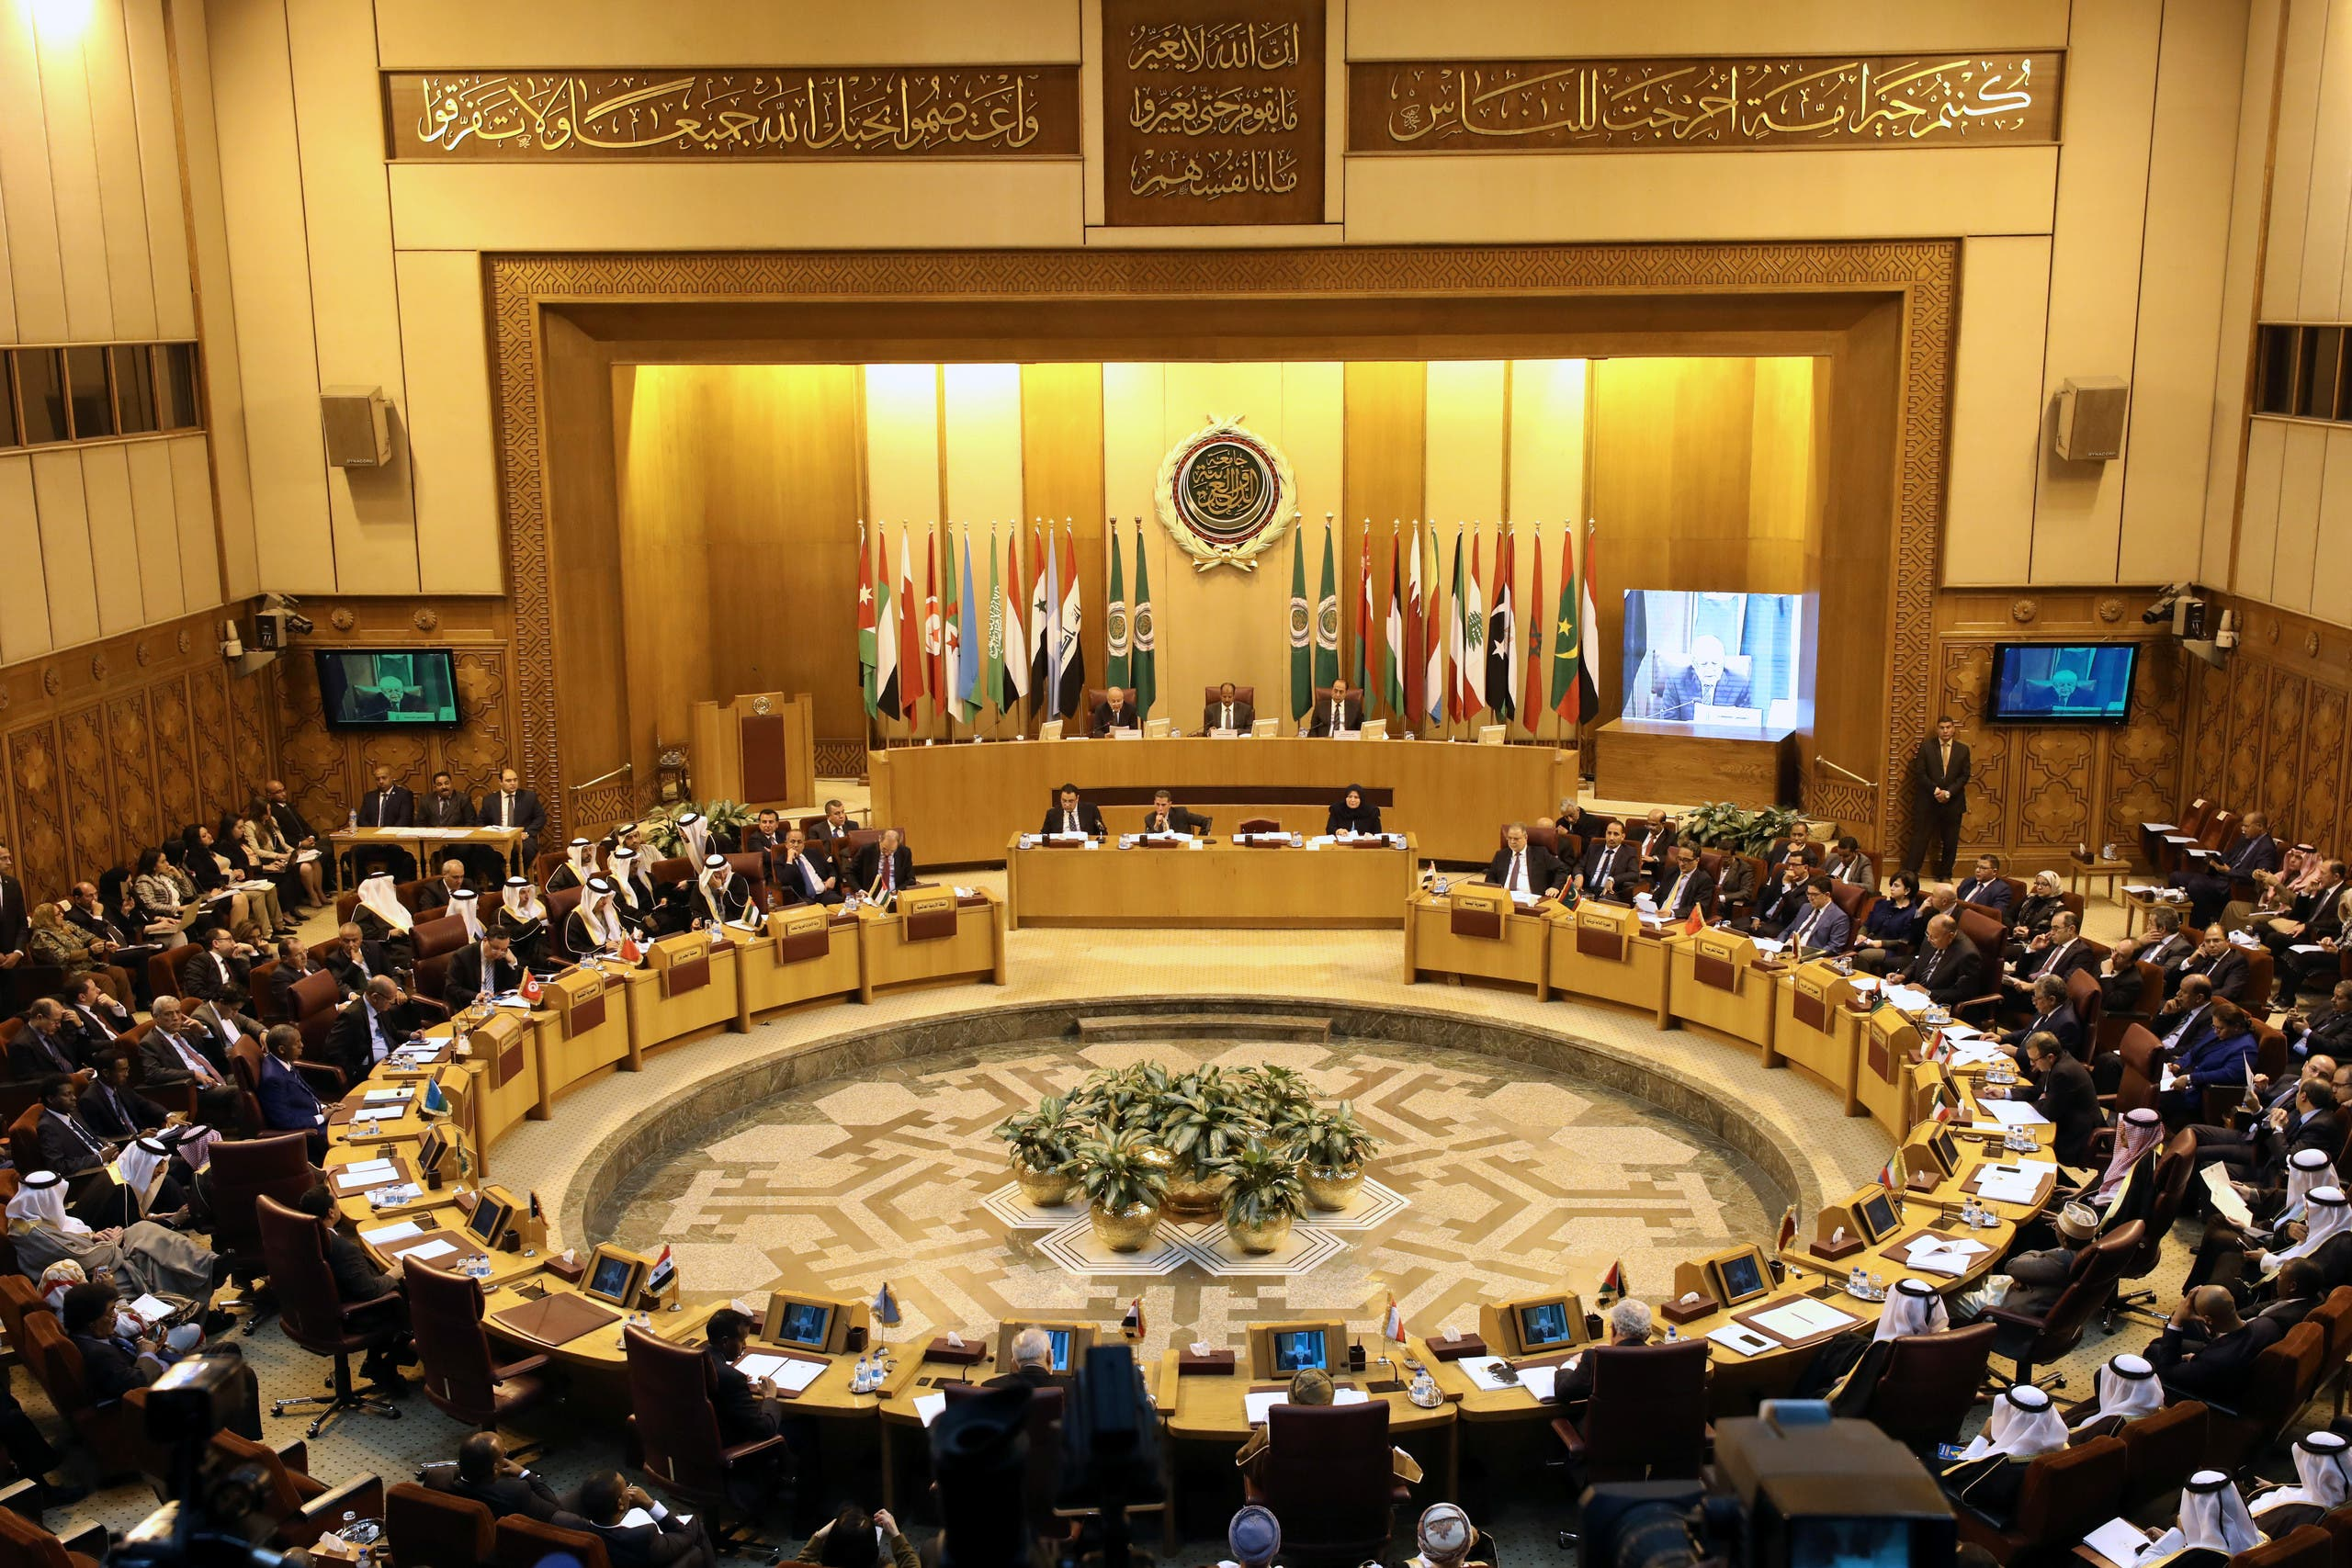 Arab League foreign ministers hold an emergency meeting on Trump's decision to recognise Jerusalem as the capital of Israel, in Cairo, Egypt December 9, 2017. (Reuters)